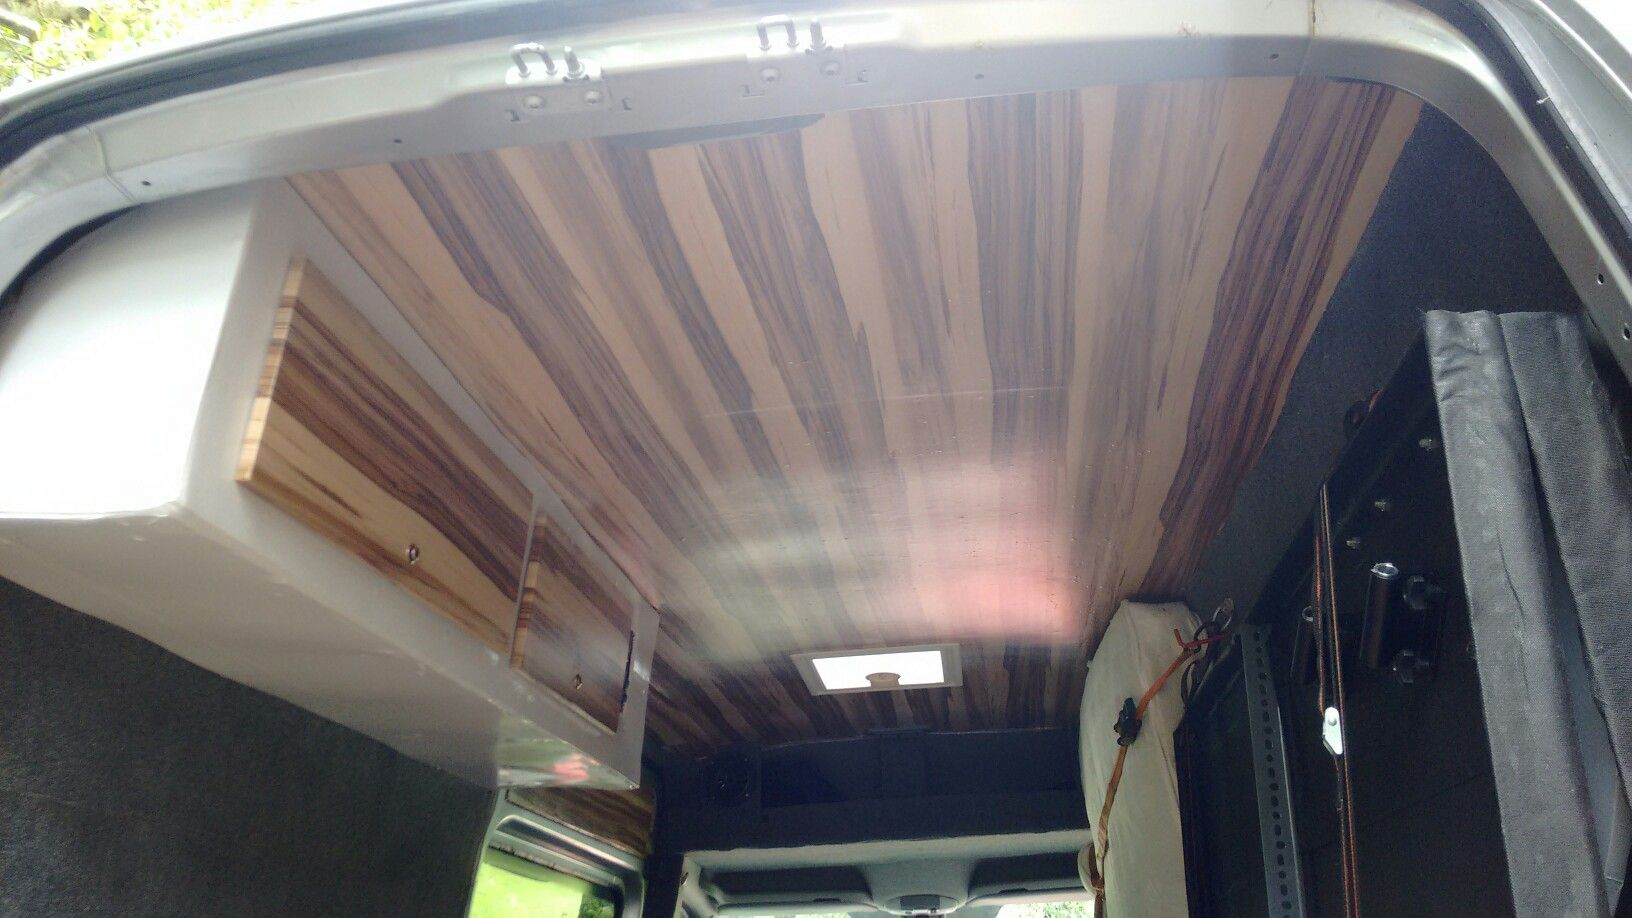 I Covered The Roof And Cabinets In Fablon After Sanding Them To Prepare The Surface It Is A Frustrating Job Especially Doing Something As Big As The Ceiling